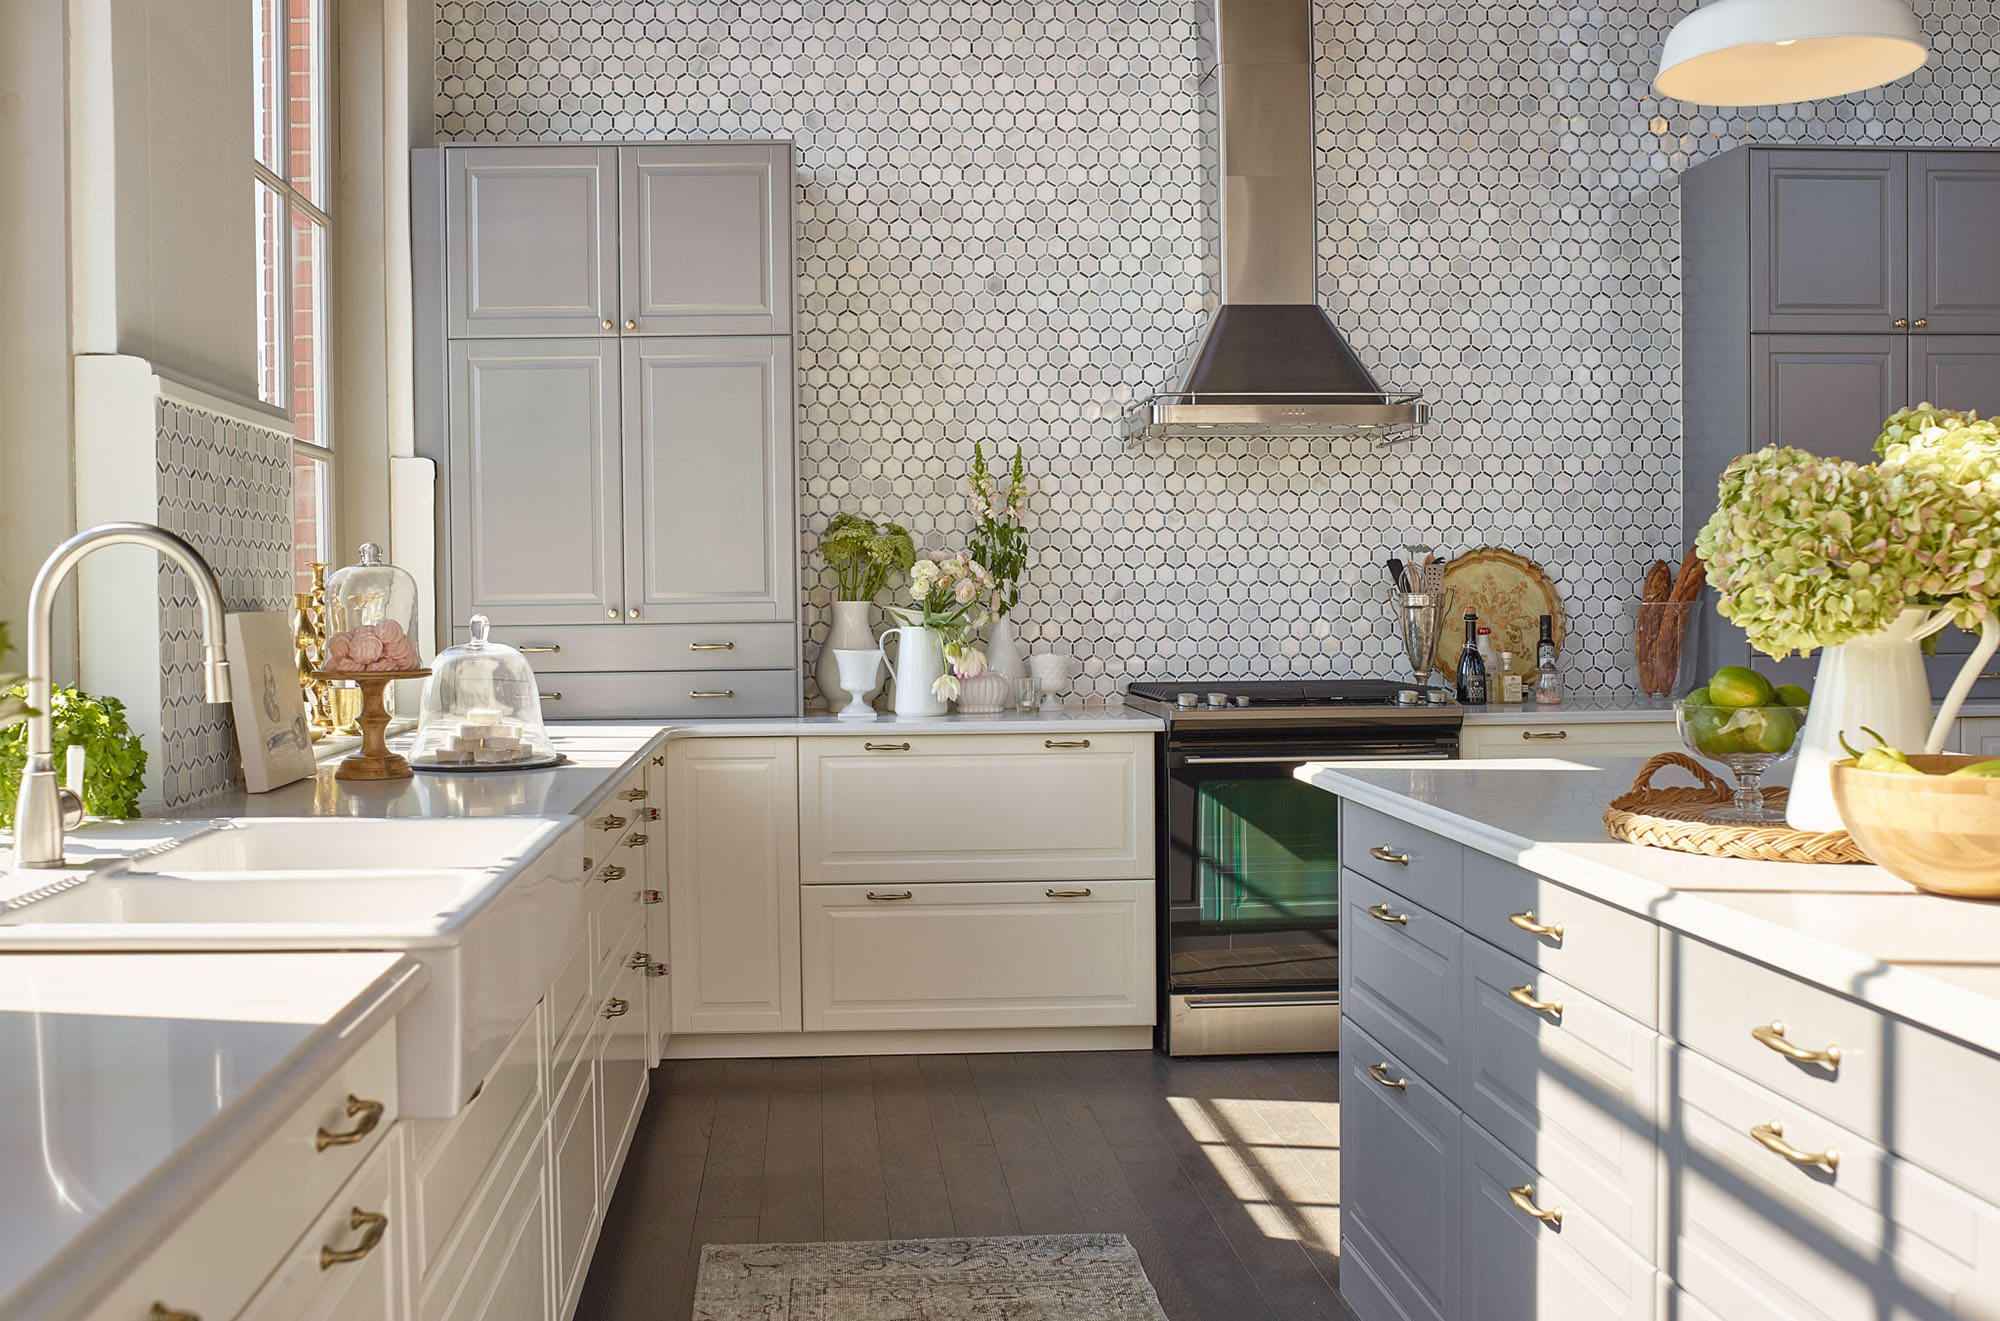 Create Your Designers Kitchen Using Ikea Cabinets In 10 Steps Linnea Lionslinnea Lions